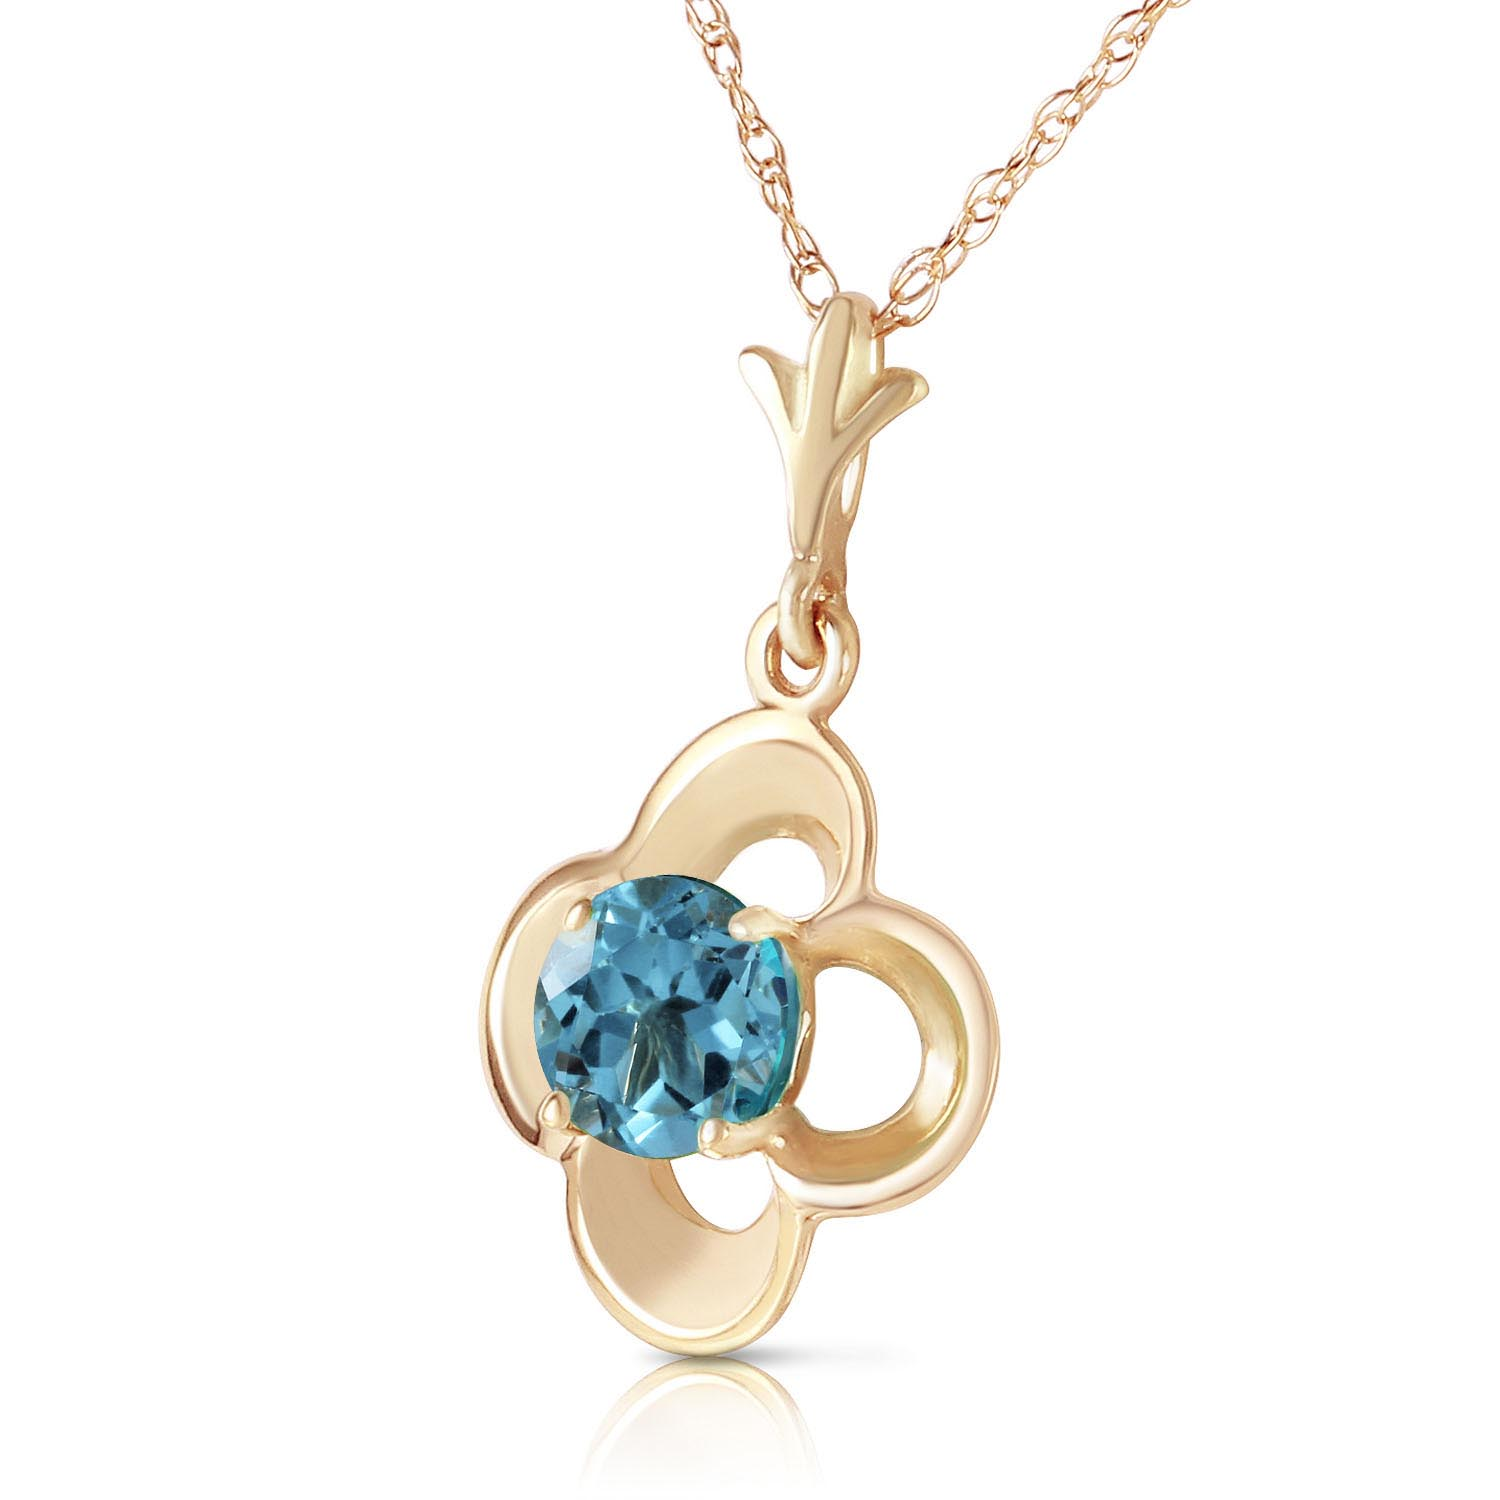 Blue Topaz Corona Pendant Necklace 0.55ct in 14K Gold